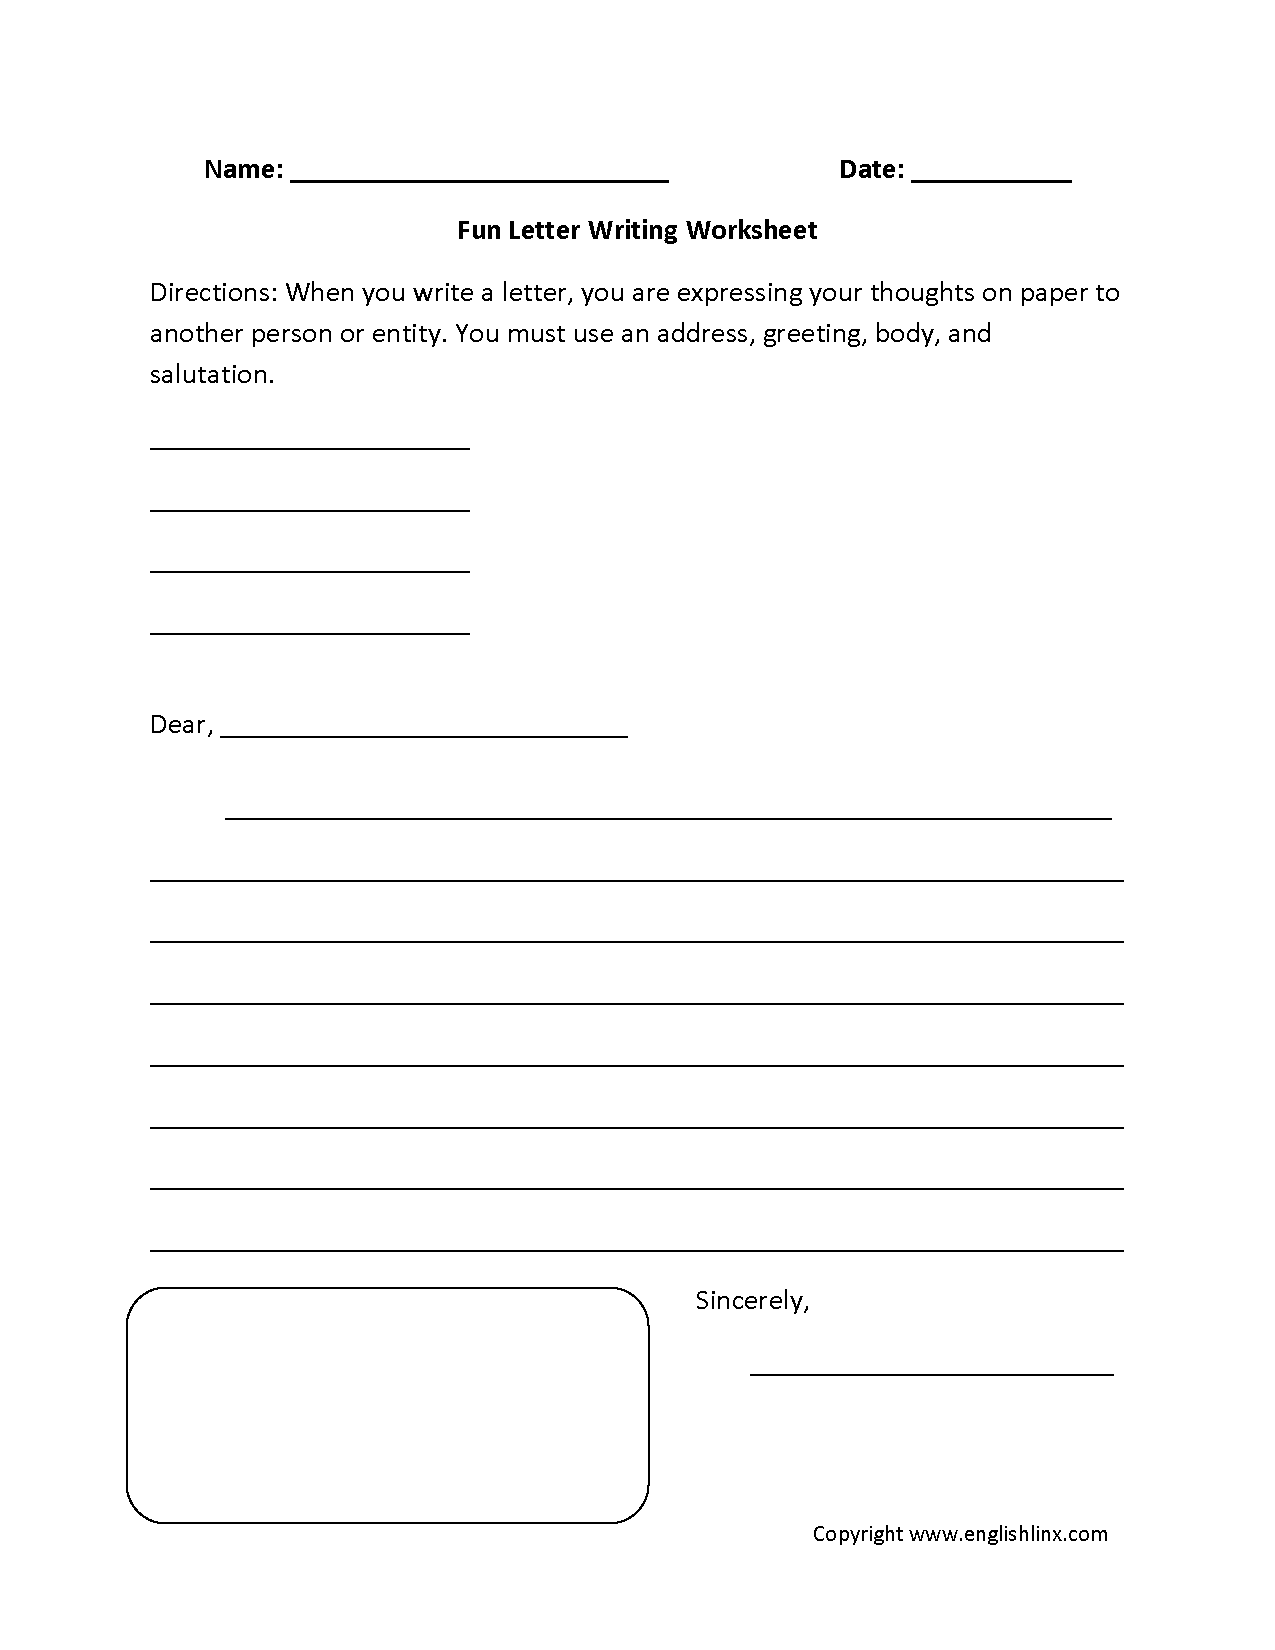 Fun Letter Writing Worksheets